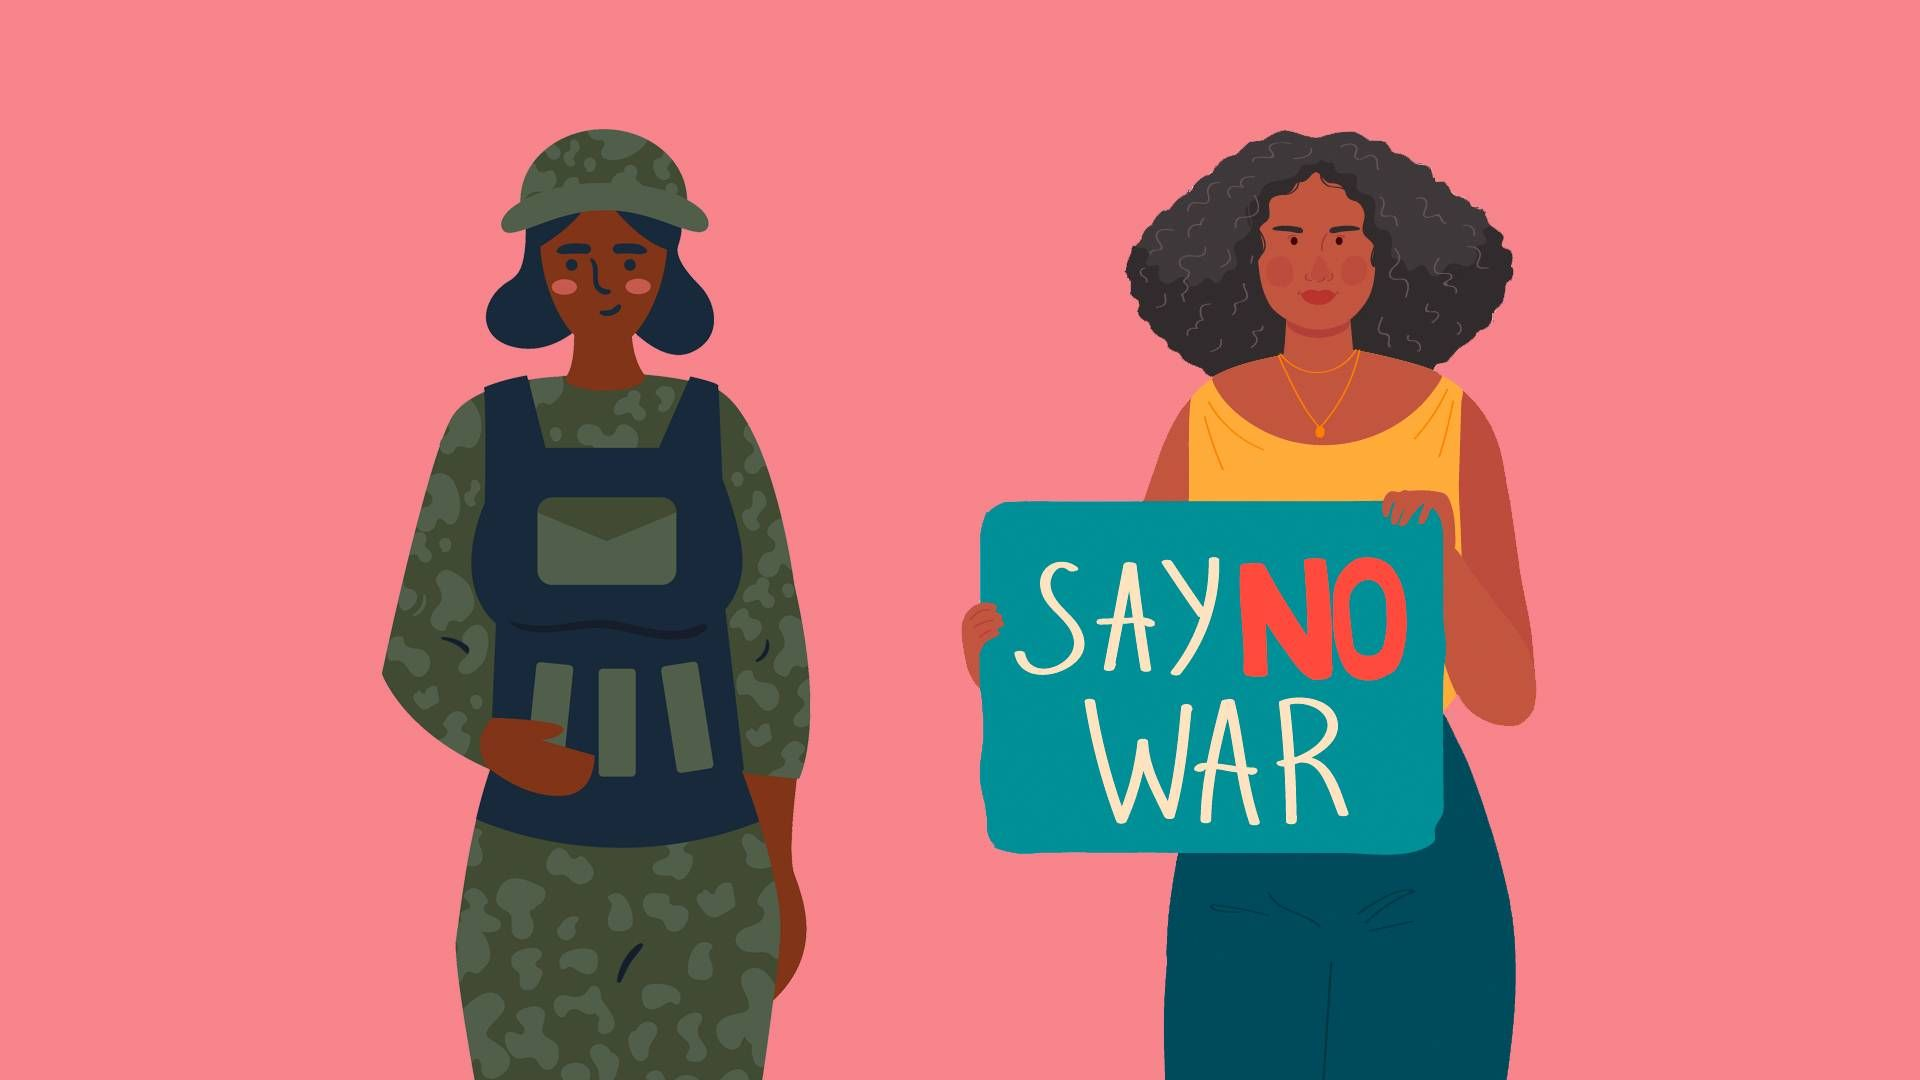 two women, one in military uniform and one anti war. rewire pbs love support military